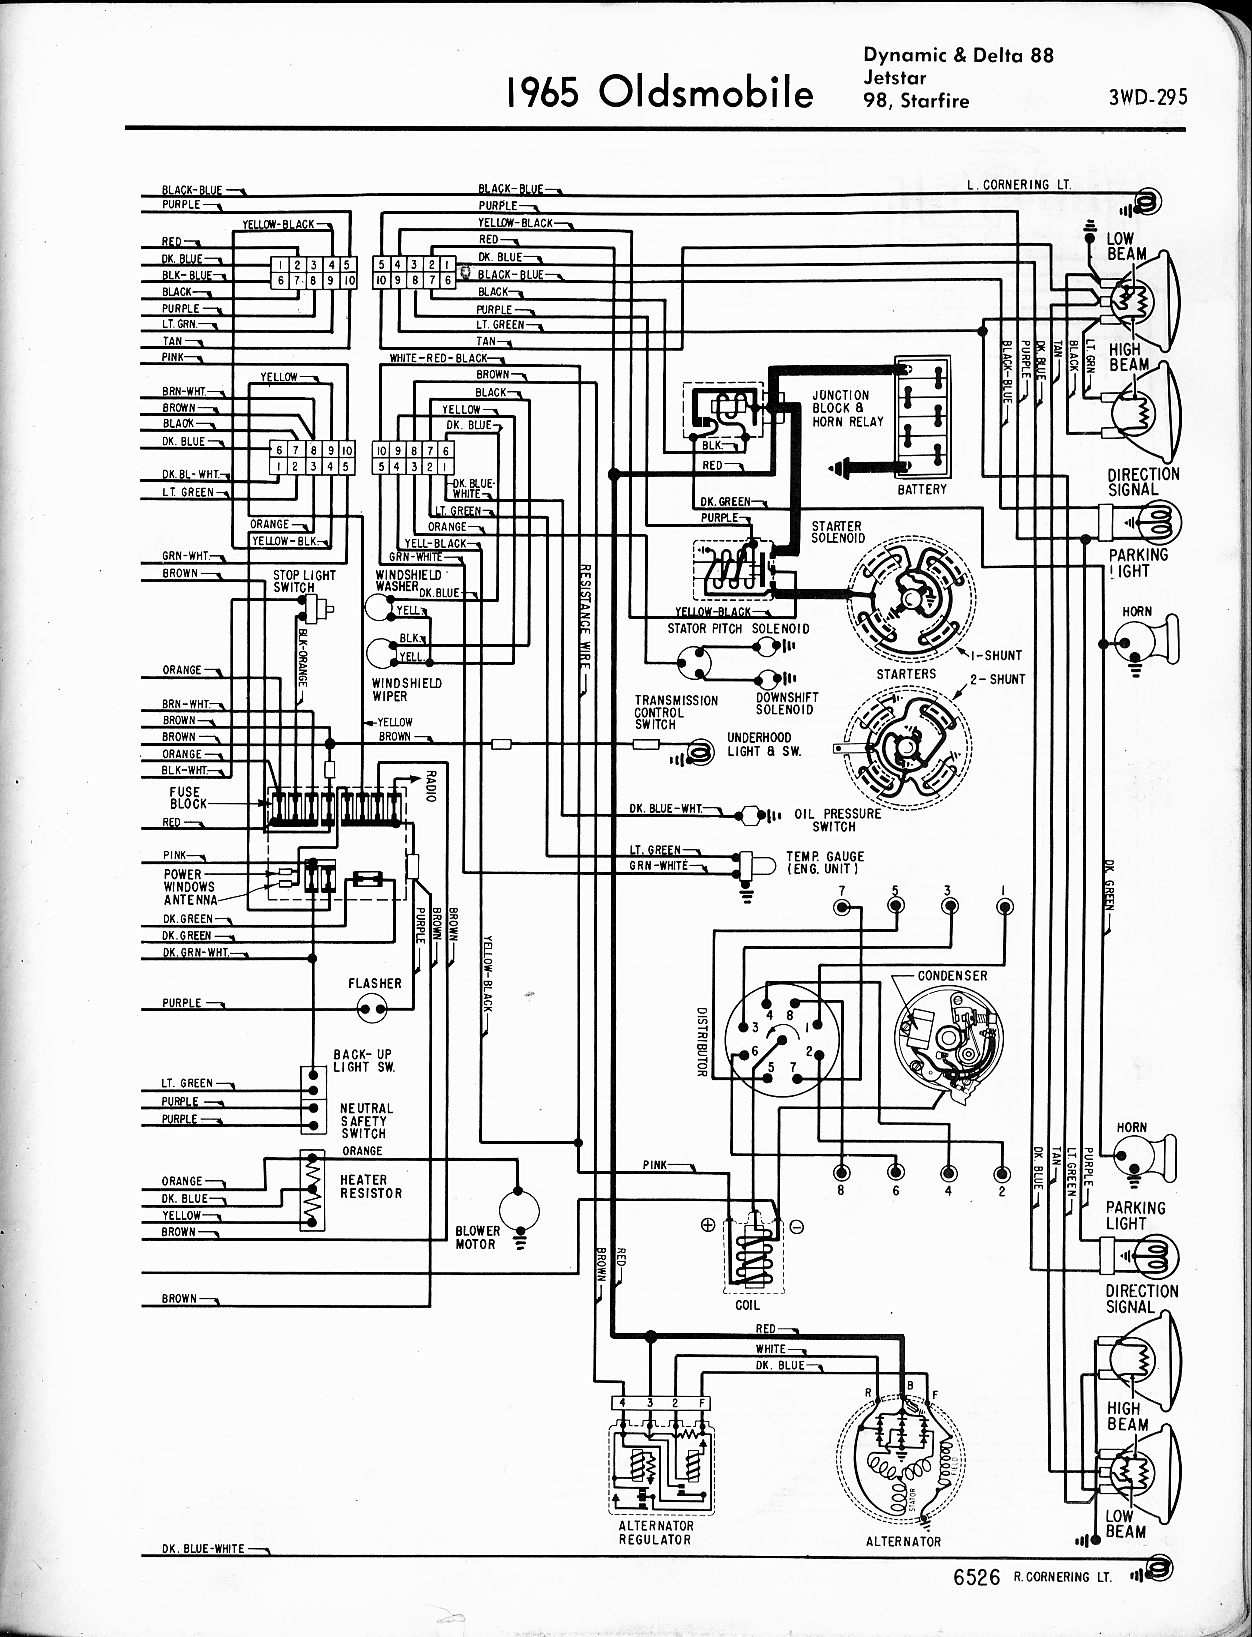 1978 Oldsmobile Engine Diagram The Portal And Forum Of Wiring 1967 Vw Toronado Third Level Rh 18 4 16 Jacobwinterstein Com Chevrolet Impala